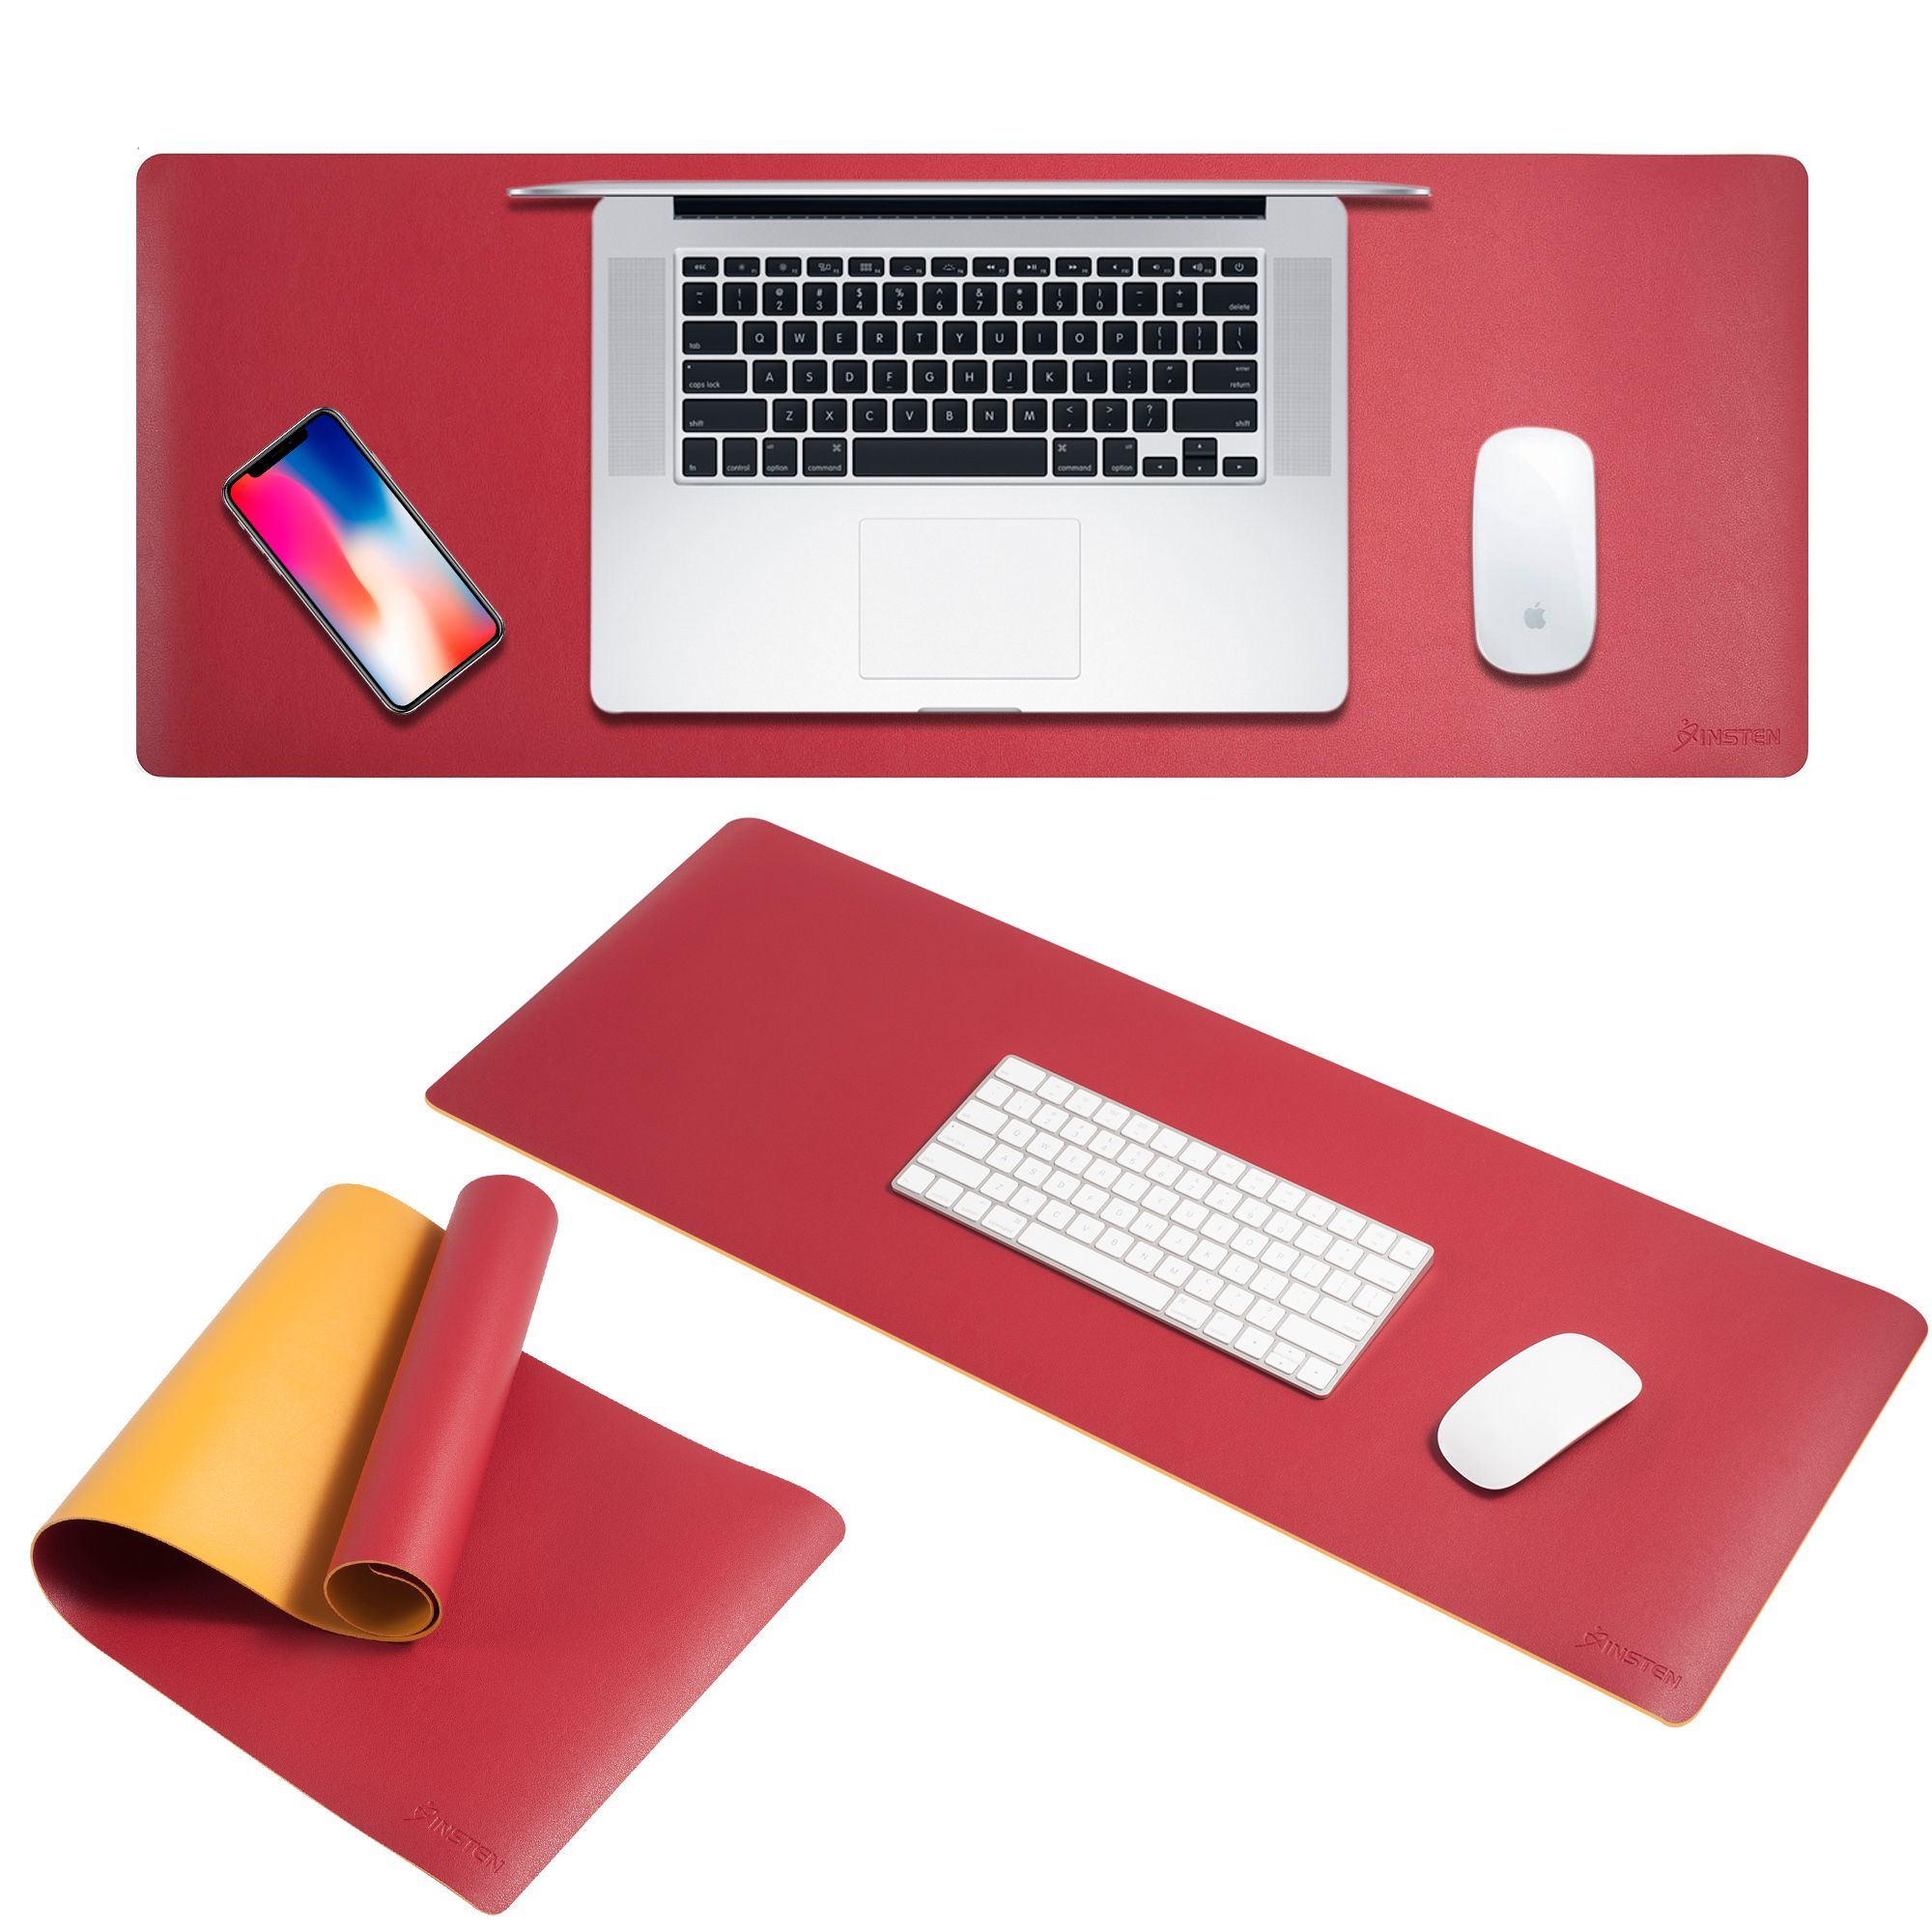 Large Mouse Pad by Insten Double-Sided Color Roll Up Leather Mouse Pad Keyboard Mat with Strap For Computer Desk PC Gaming (31.5 inch x 11.8 inch) - Red/Yellow